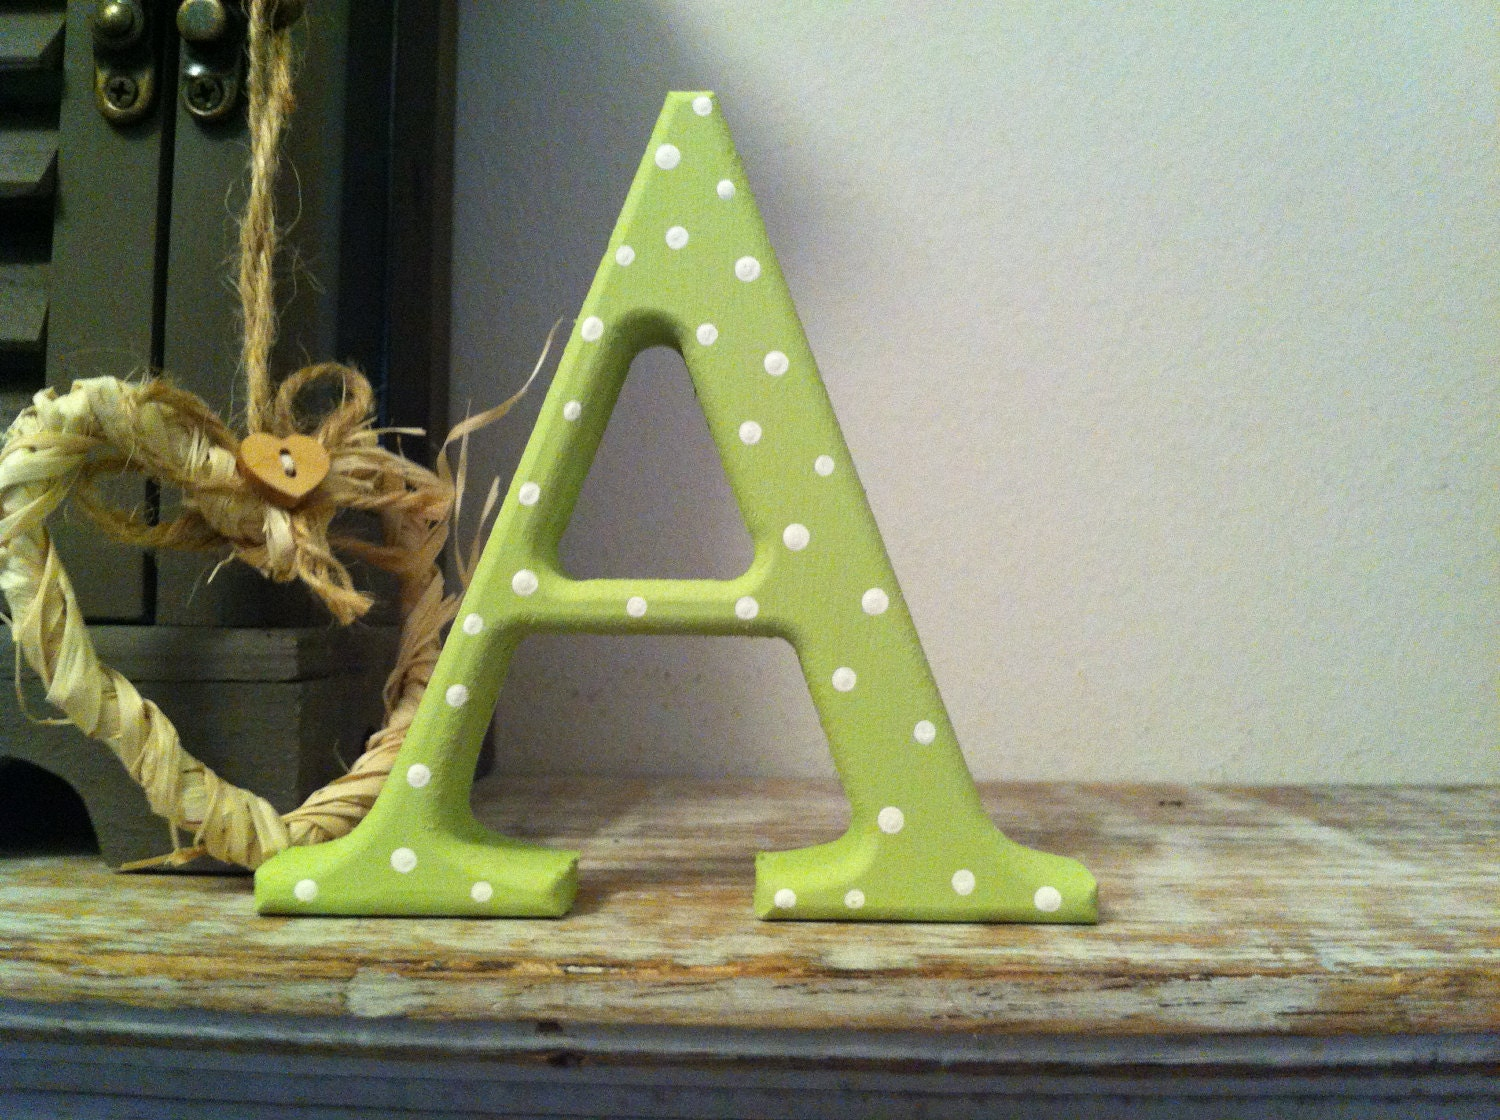 Letter A in Georgia Font, with a lime green and white polka dot finish